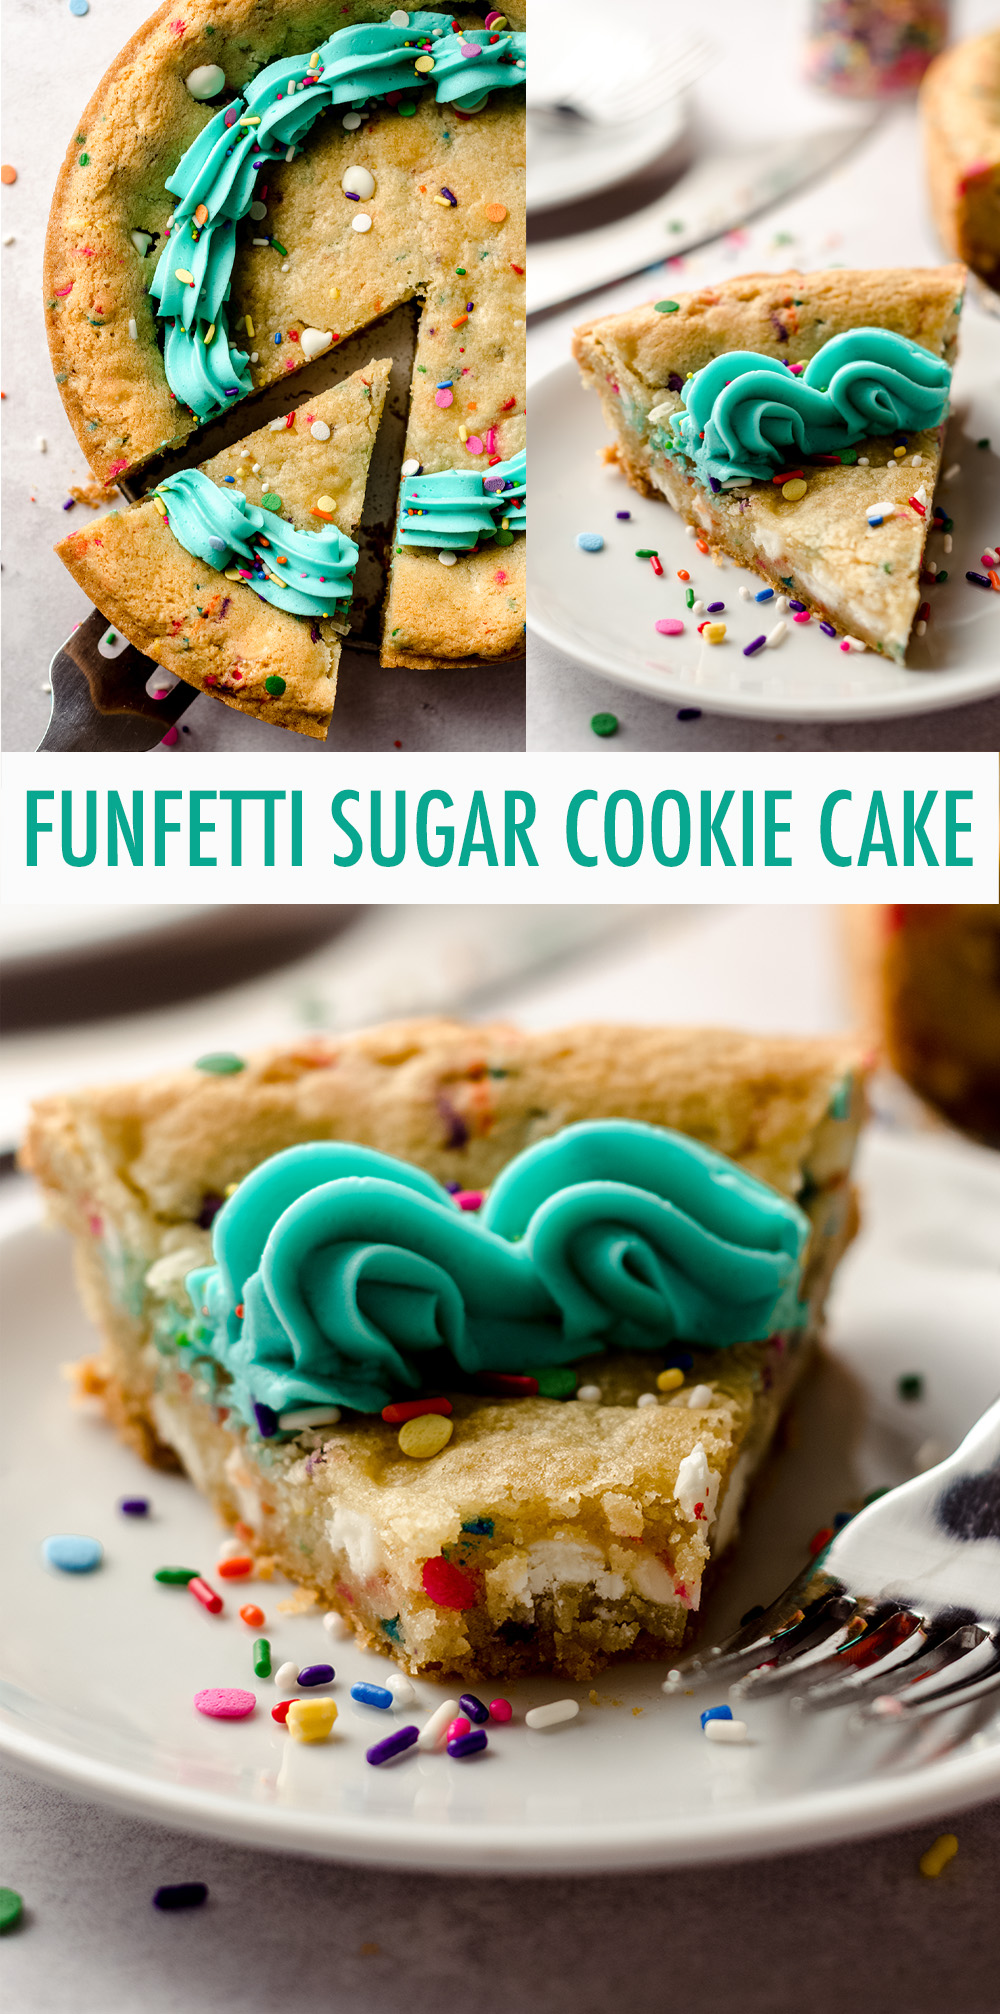 This giant sugar cookie cake recipe yields a soft and buttery center and crunchy edges. Top it with a creamy and buttery almond vanilla buttercream and sprinkles and you're ready for a celebration!